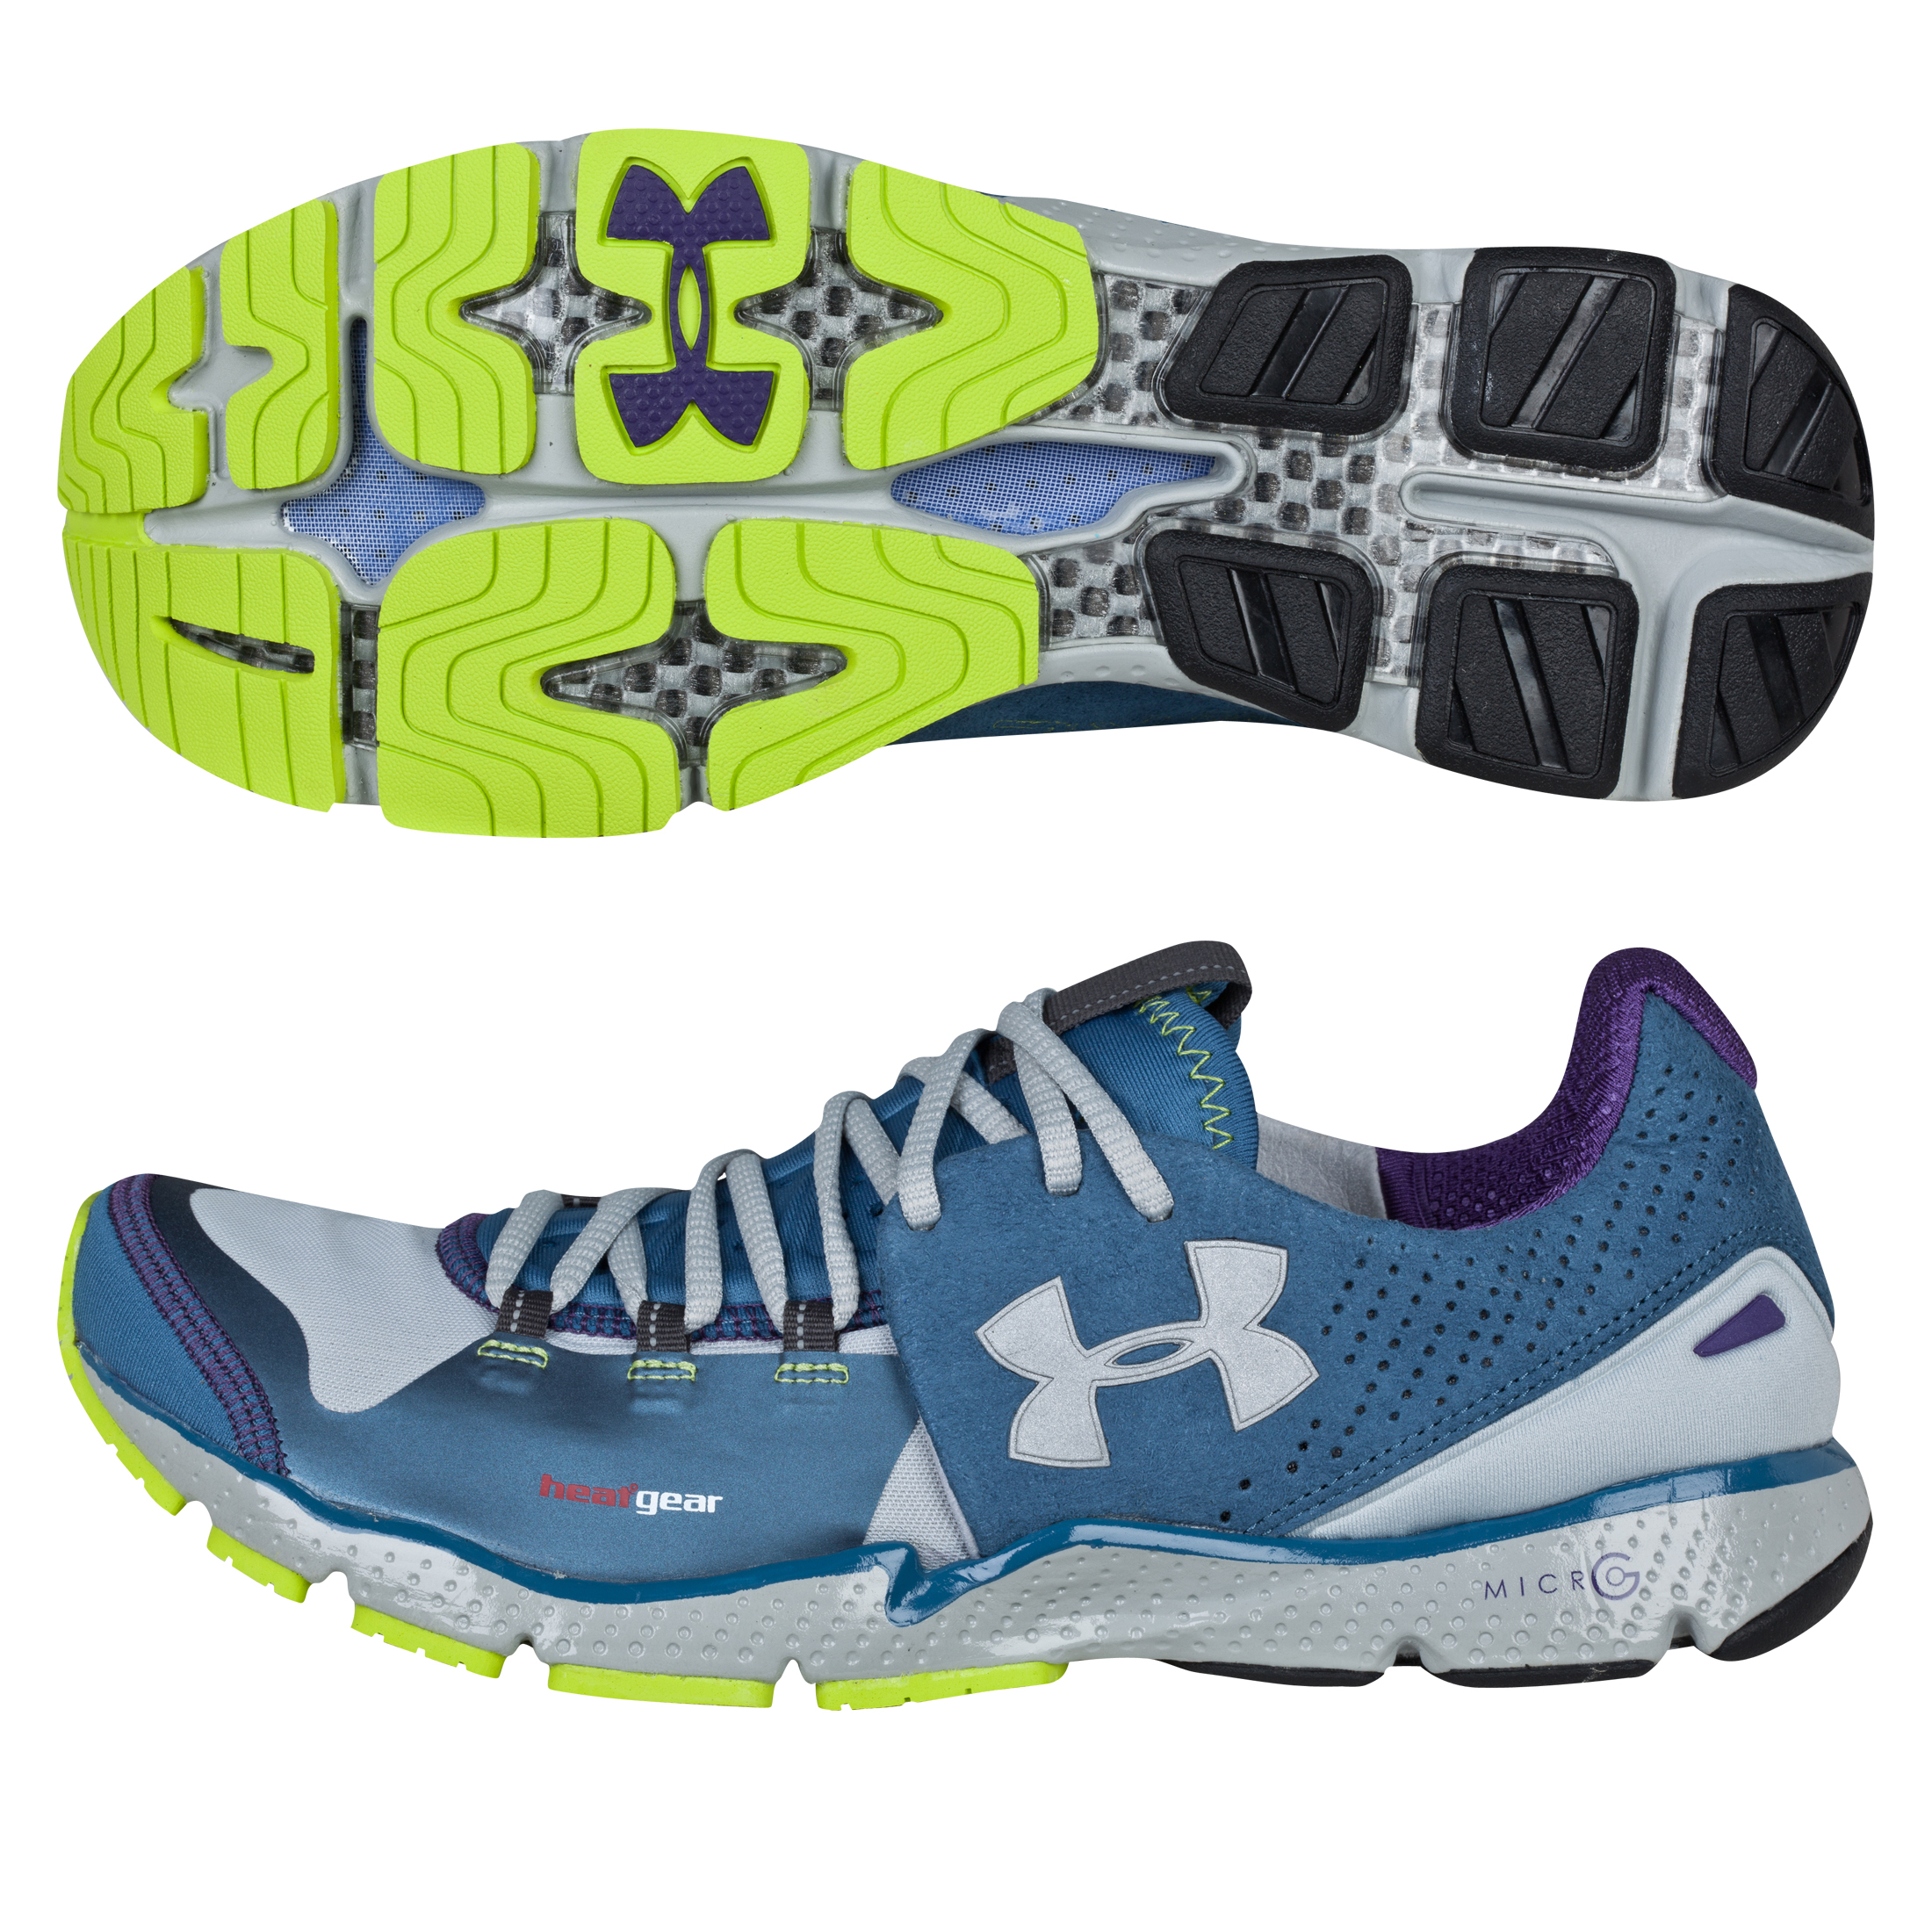 Under Armour Charge RC Running Trainers - Metallic Silver/Kinect/Metallic Silver